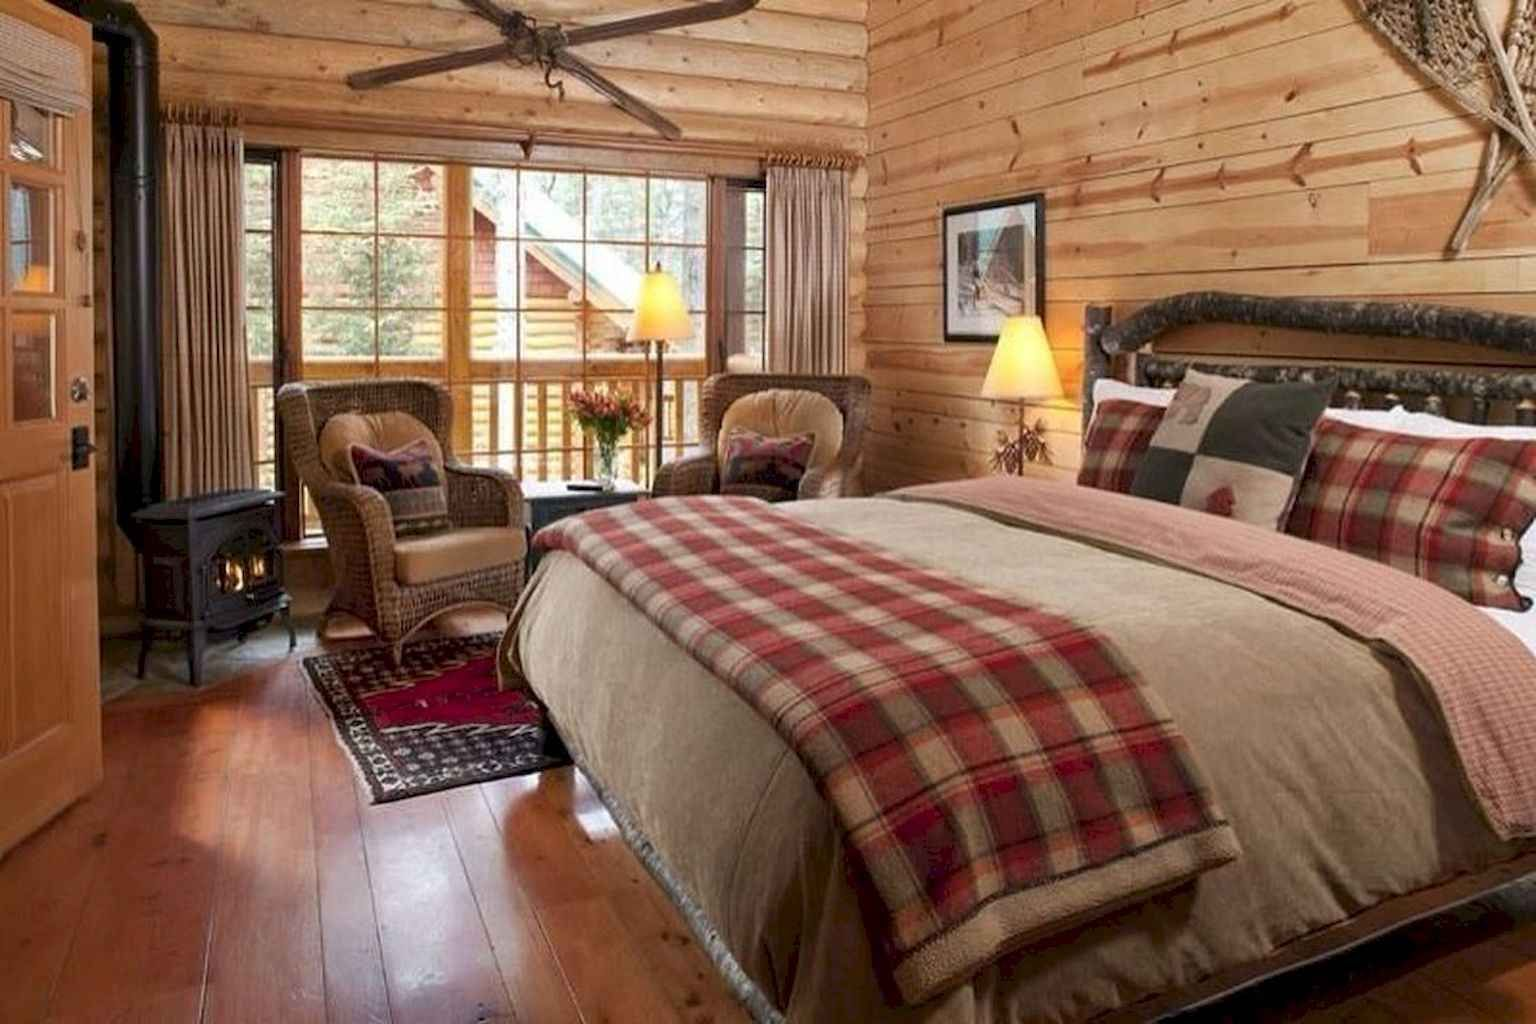 21 Rustic Lake House Bedroom Decorating Ideas Cabin Bedroom Decor Rustic Master Bedroom Lakehouse Bedroom